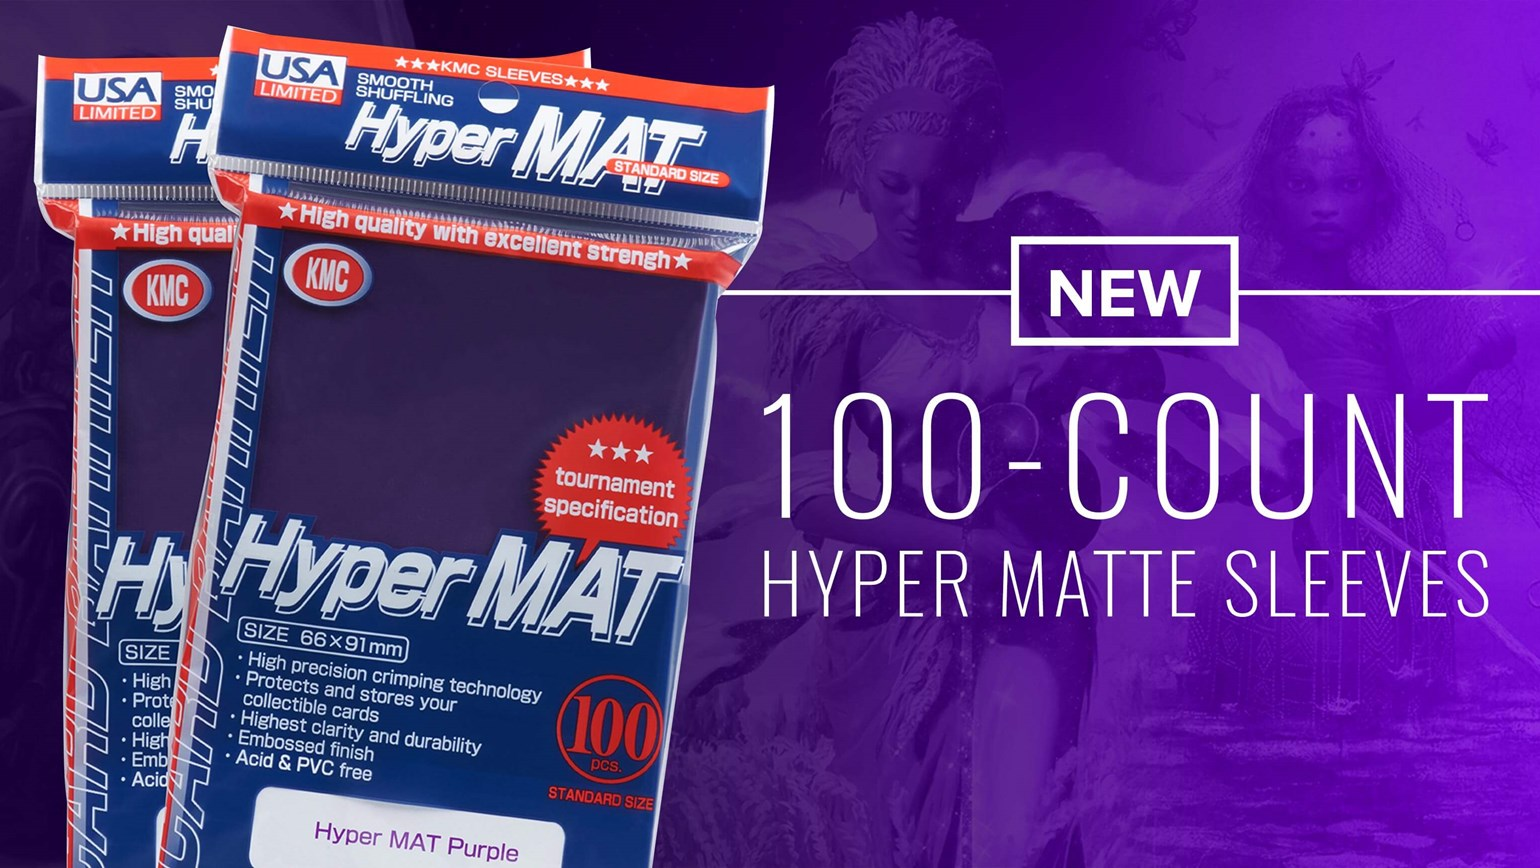 KMC USA 100-Count Hyper Matte Sleeves for MTG Commander Decks Now Available on TCGplayer